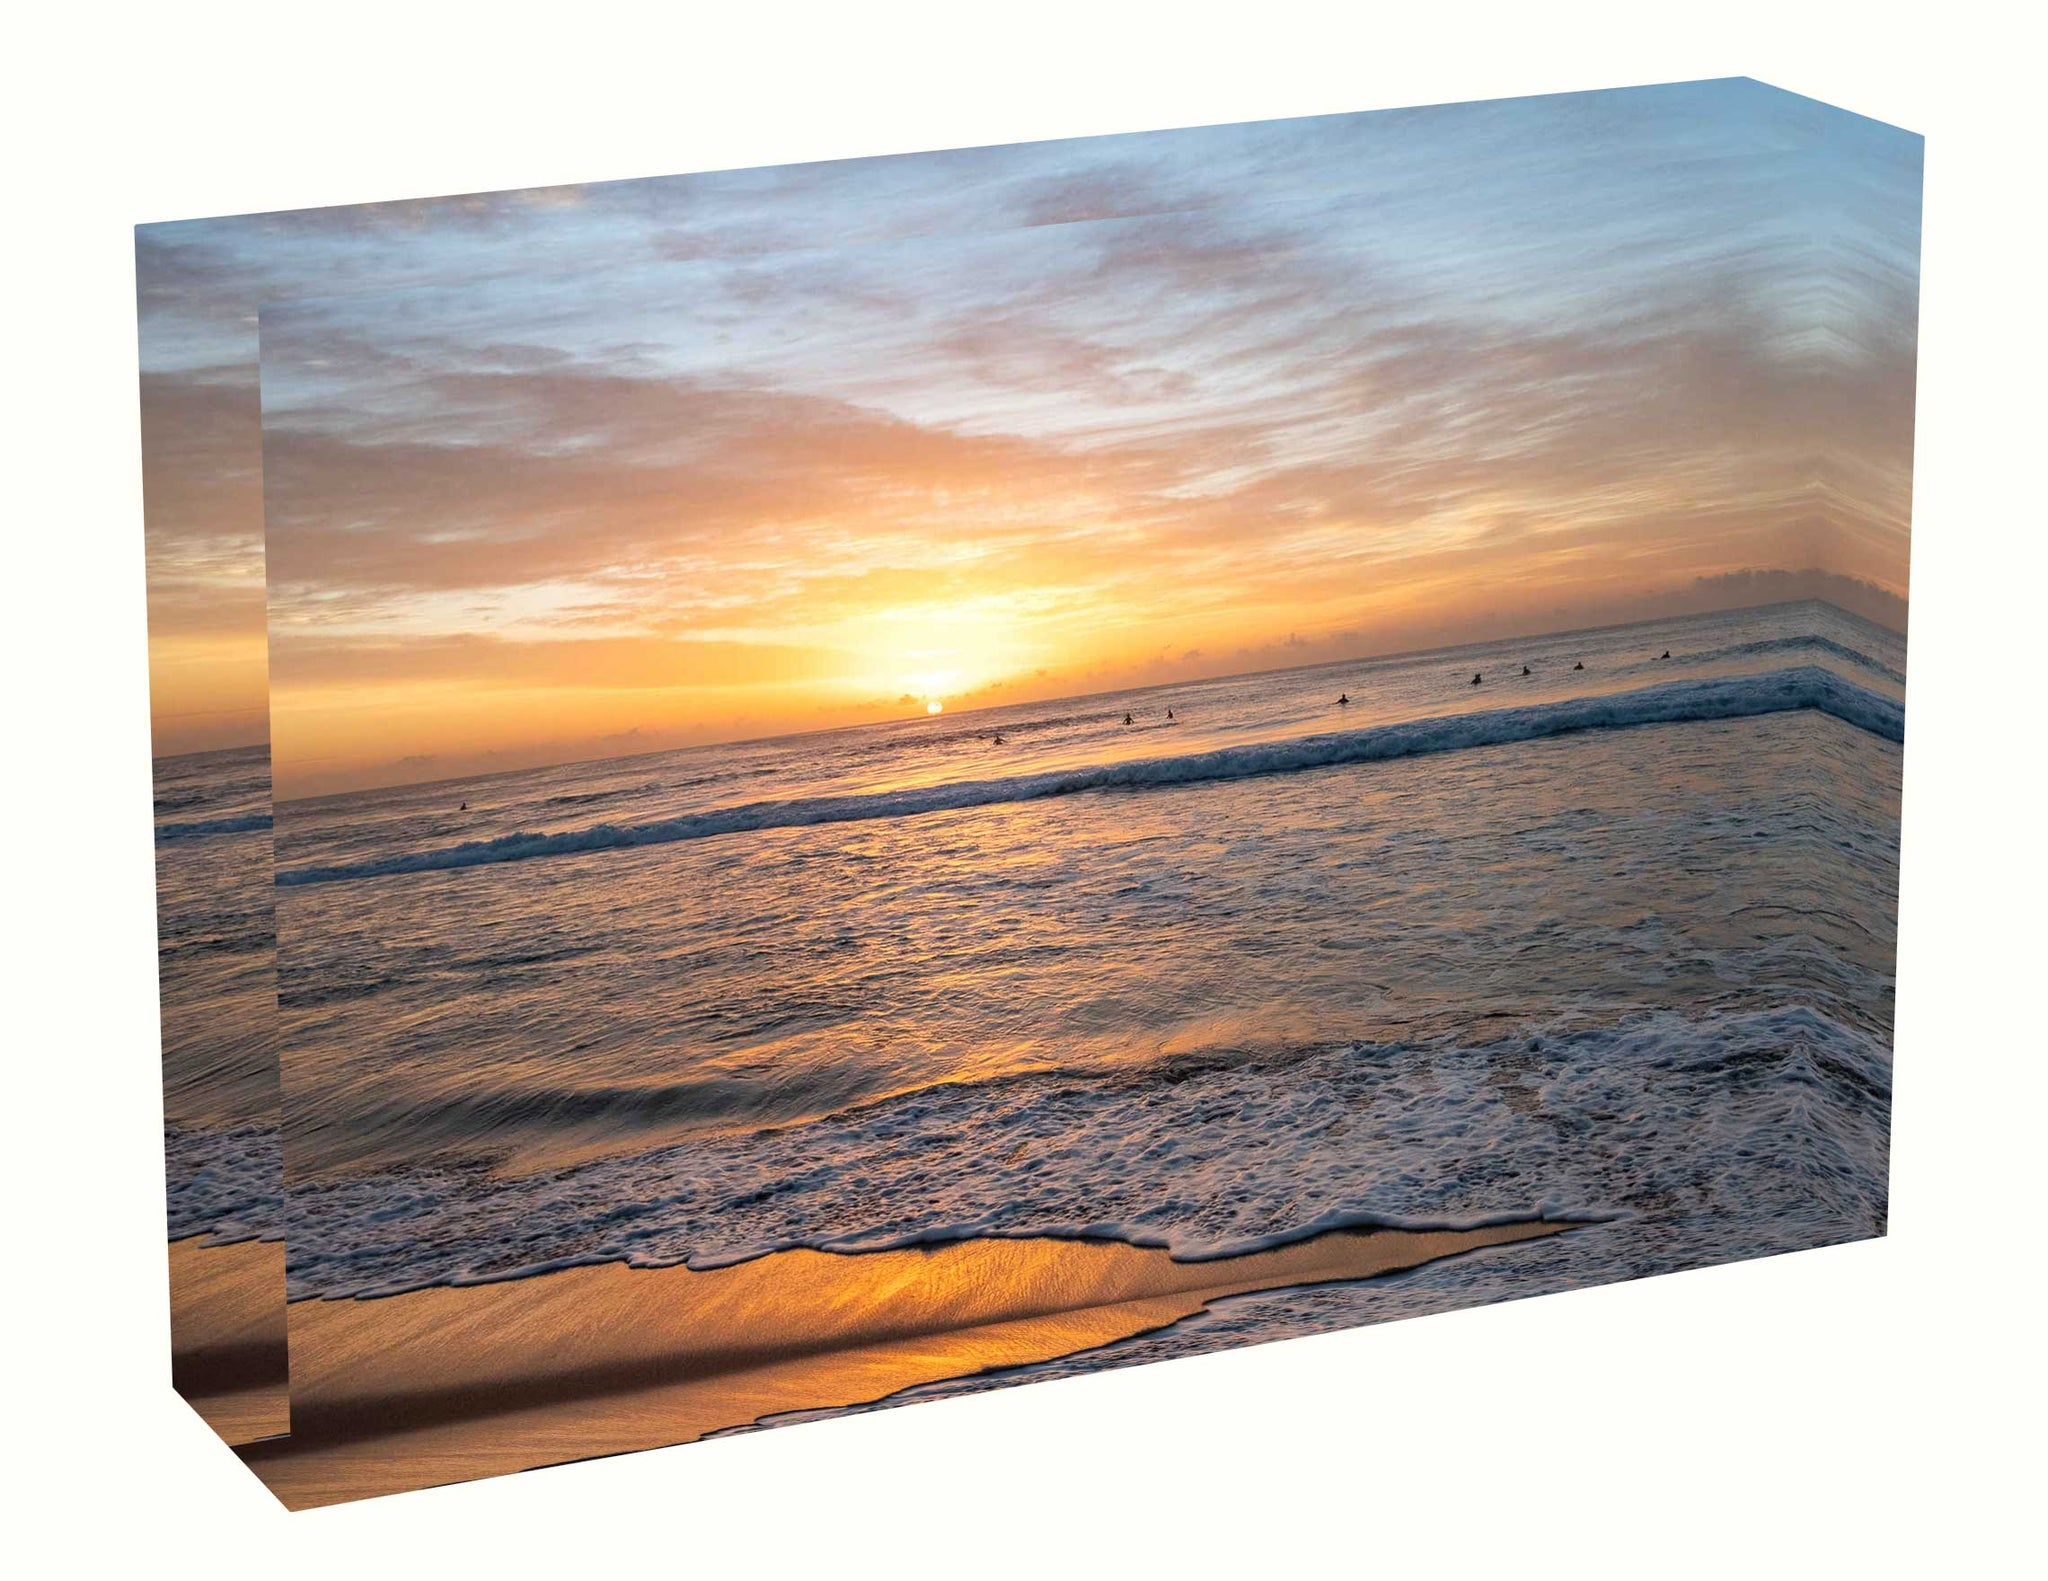 acrylic block Sunrise photo from the 17th April 2020 at Manly beach in Sydney